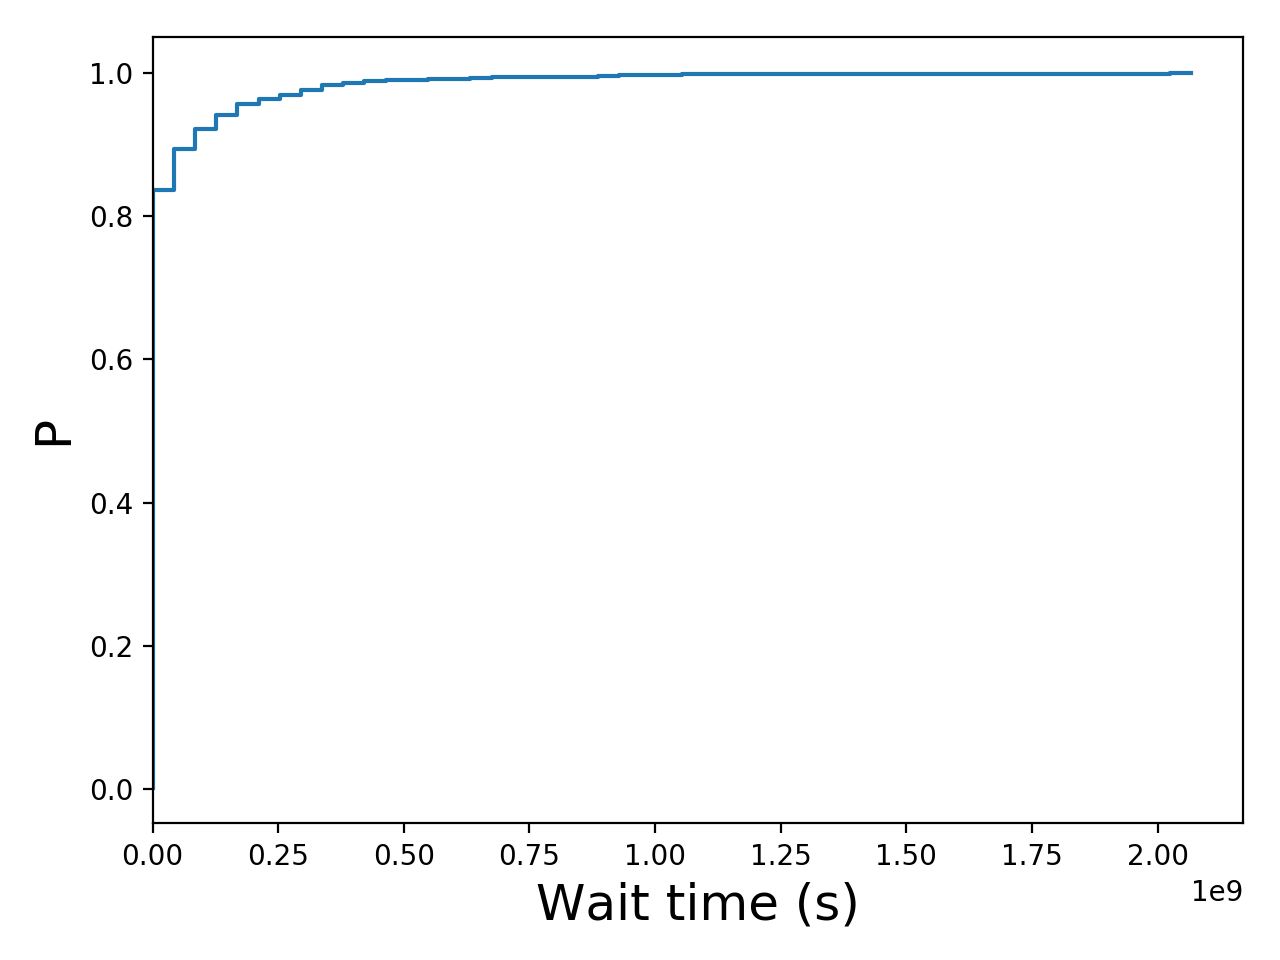 Task wait time CDF graph for the Two_Sigma_pit trace.